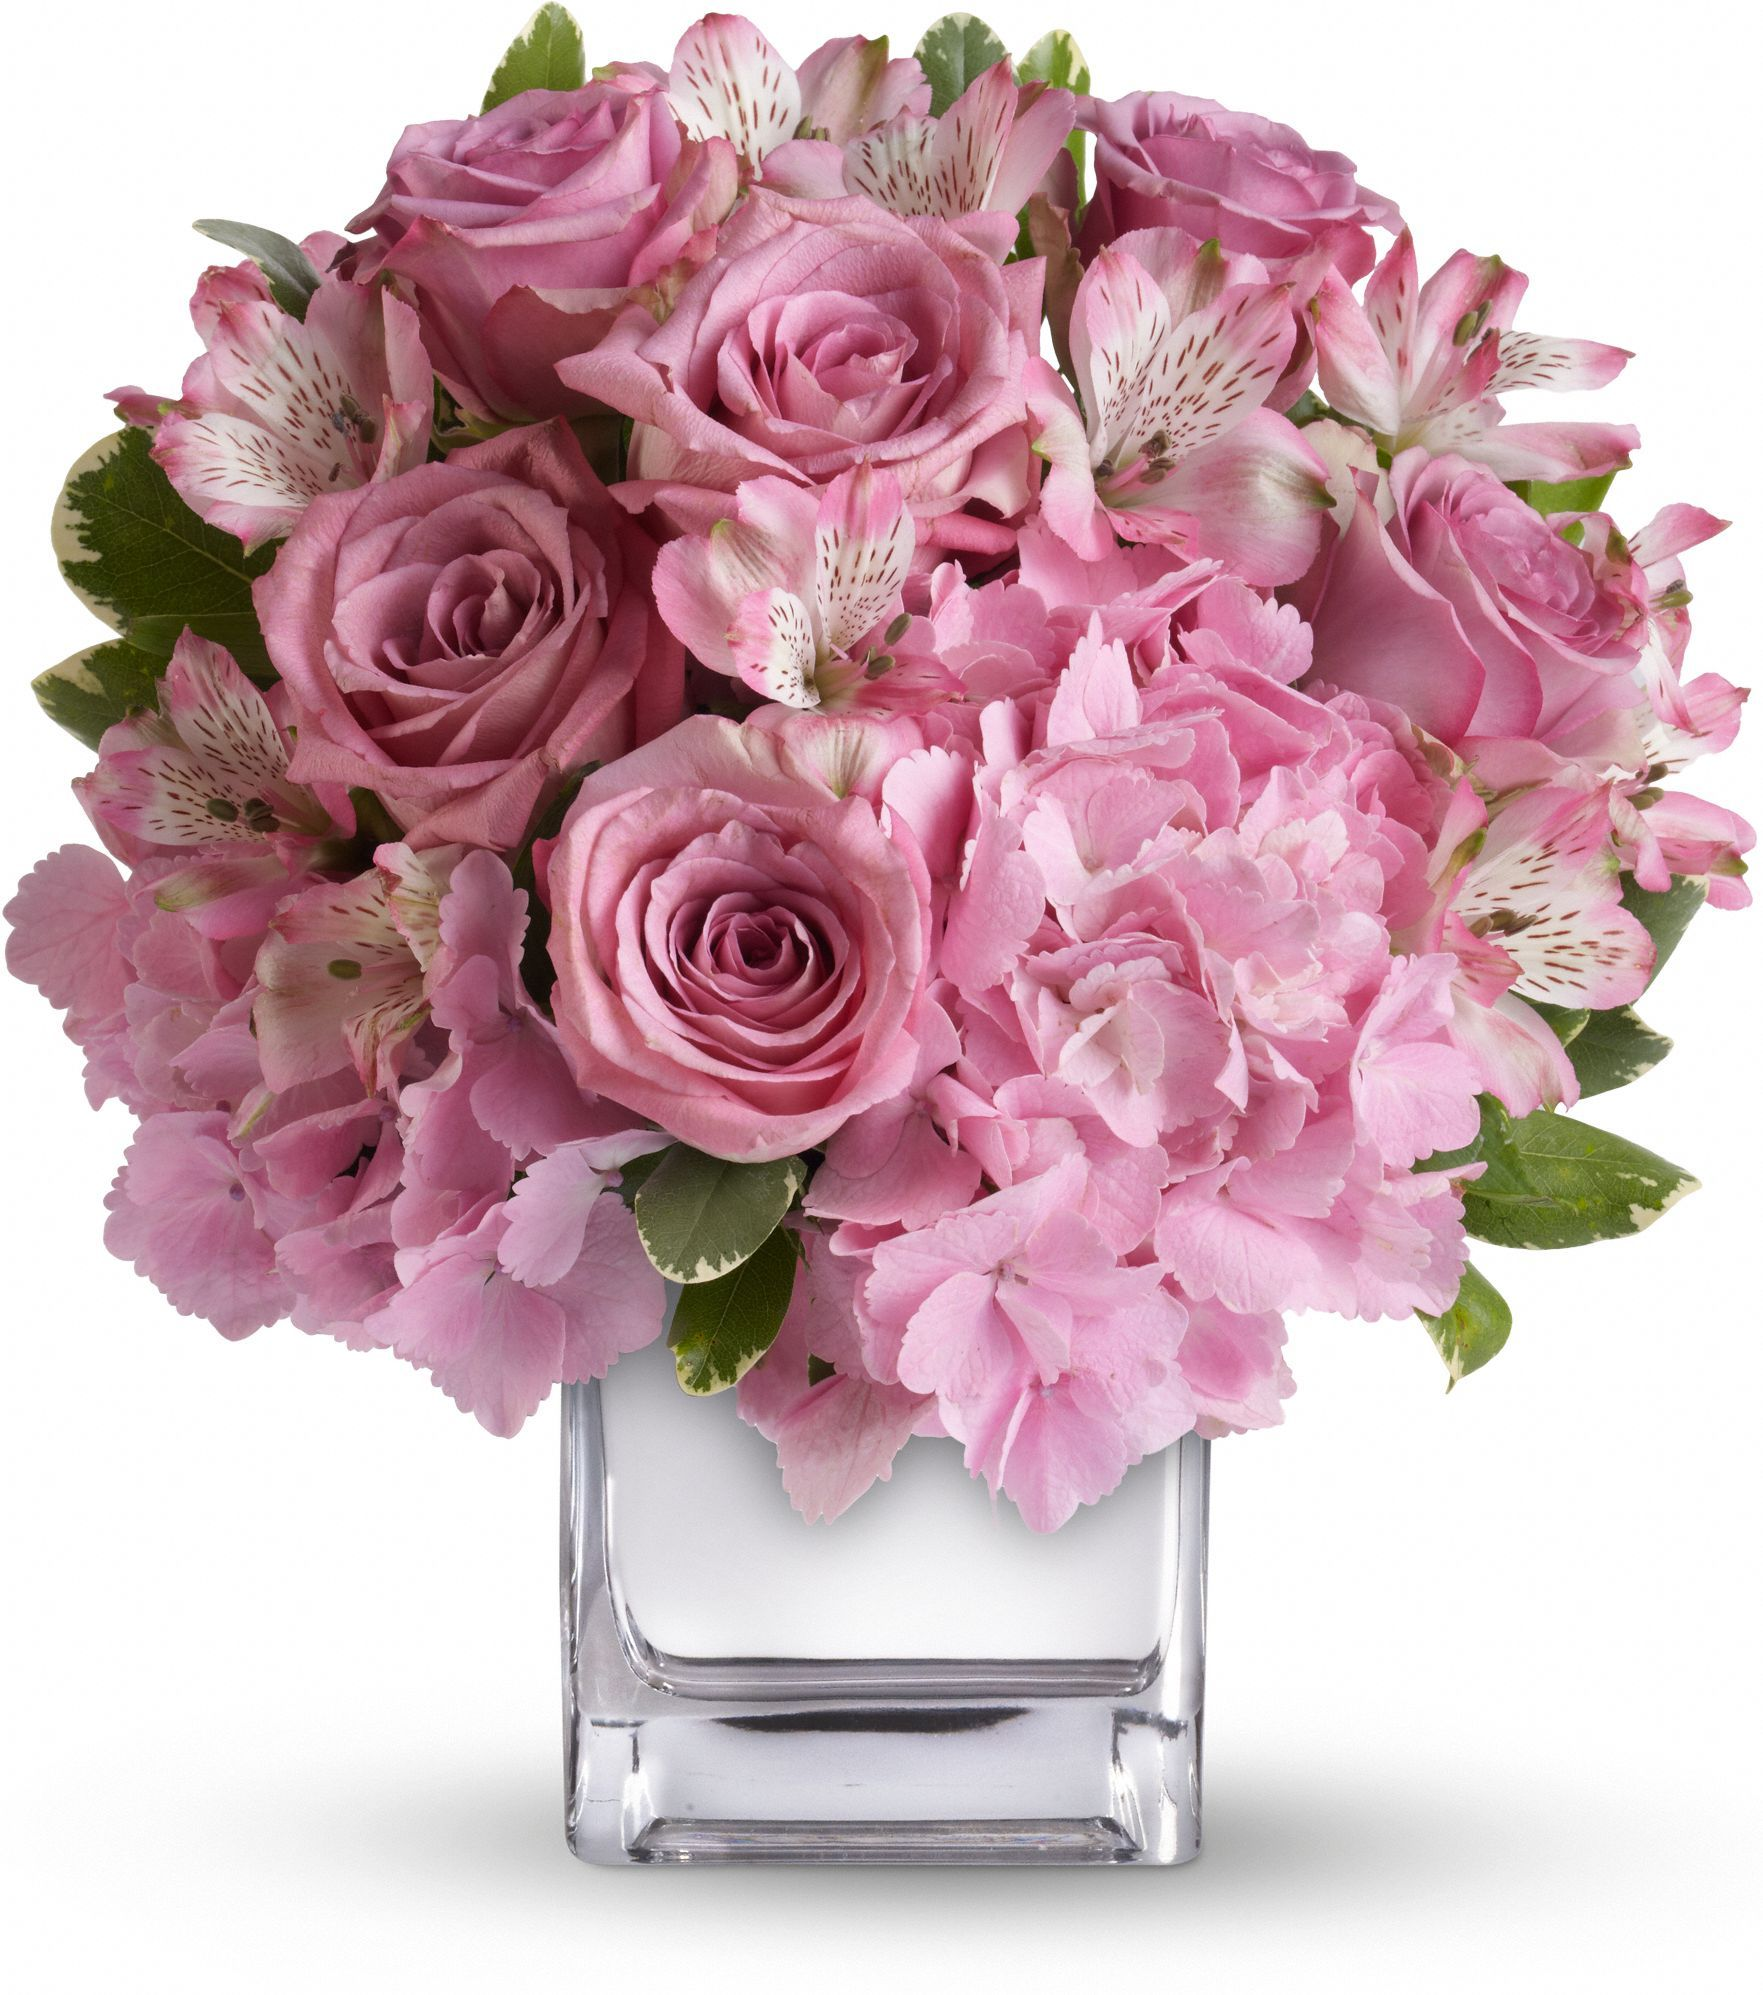 Teleflora's Be Sweet Bouquet Save 25 on this bouquet and